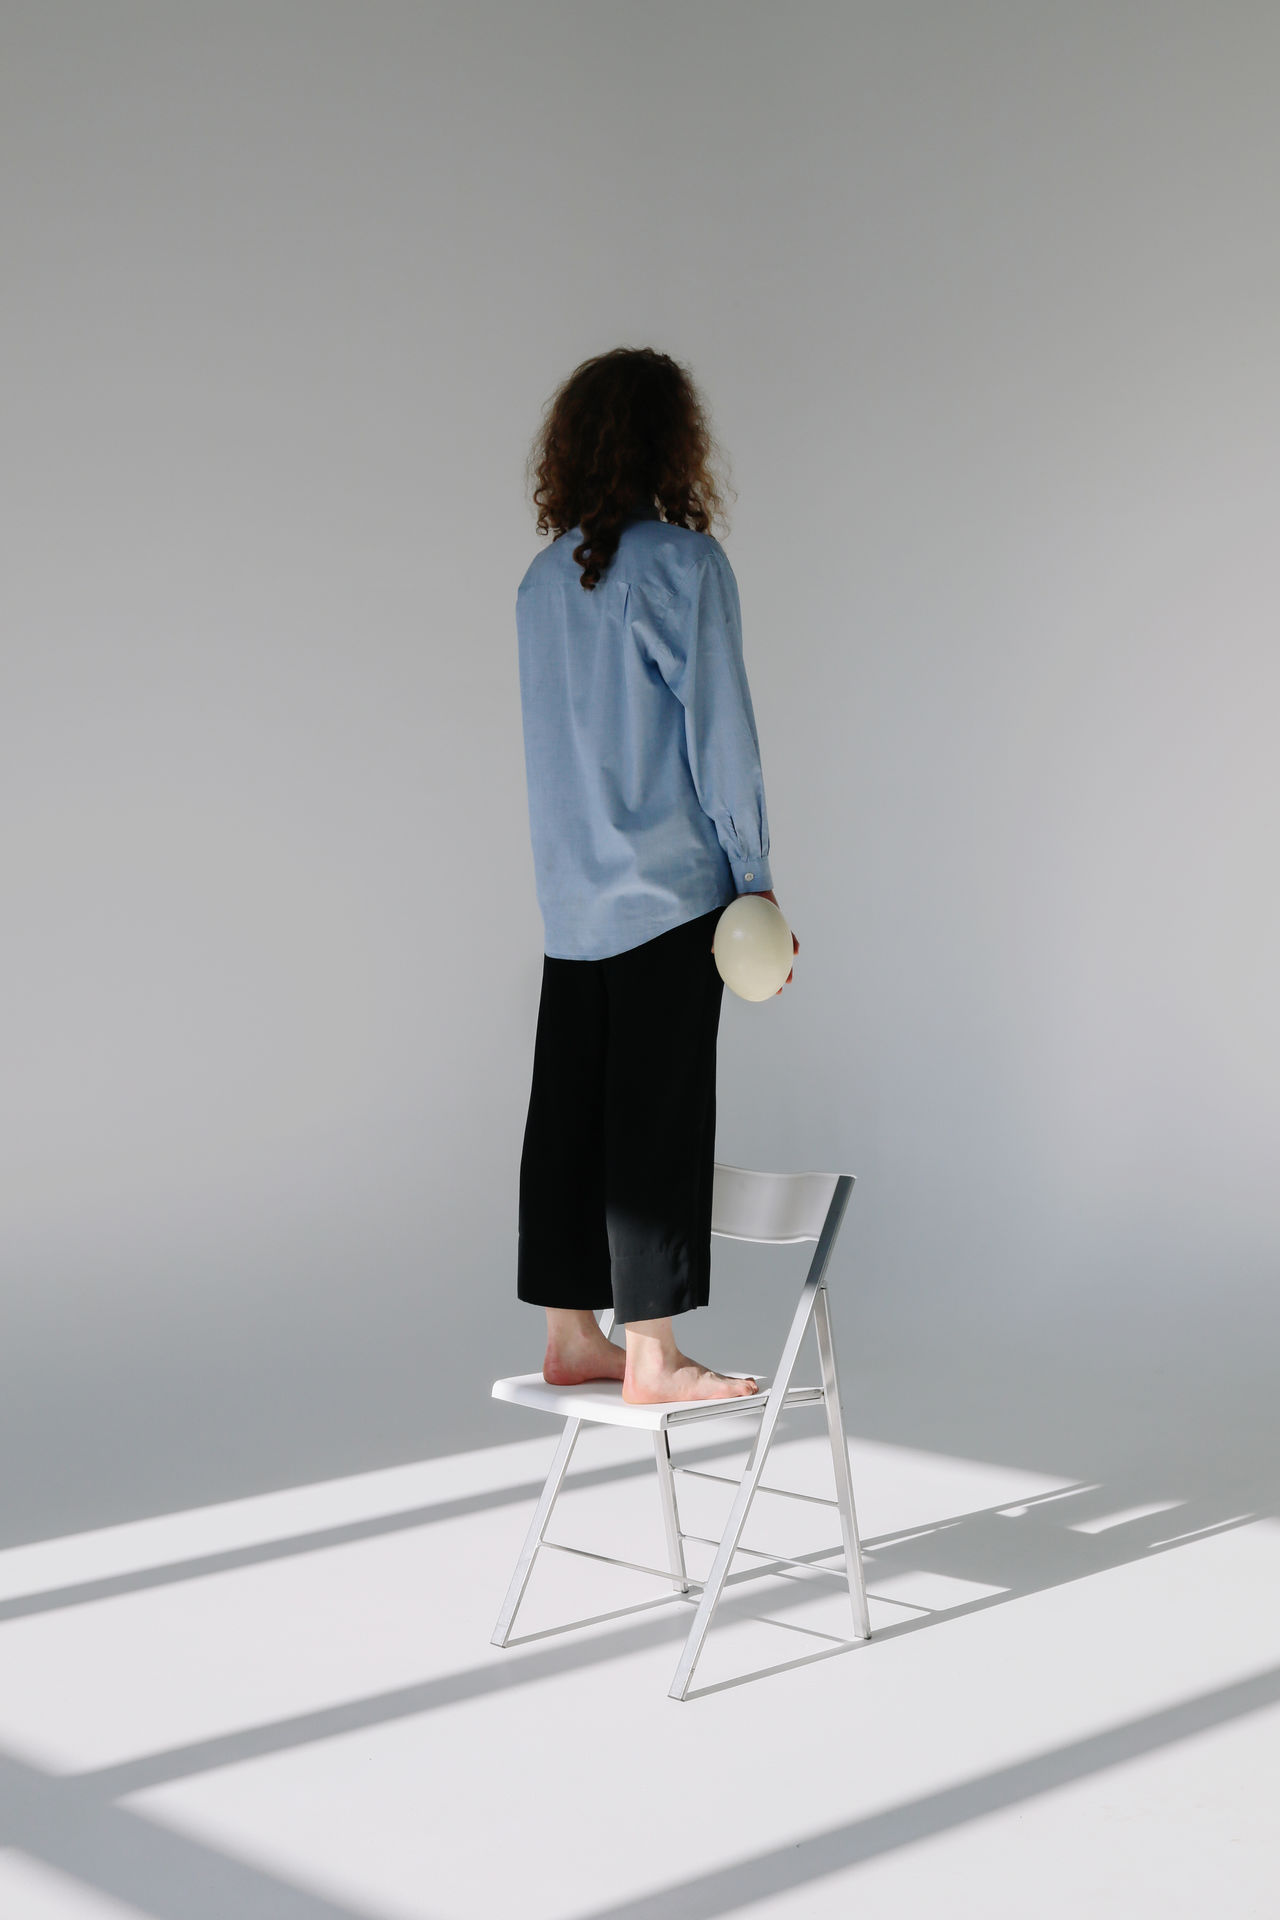 Rear view of woman standing on chair against wall